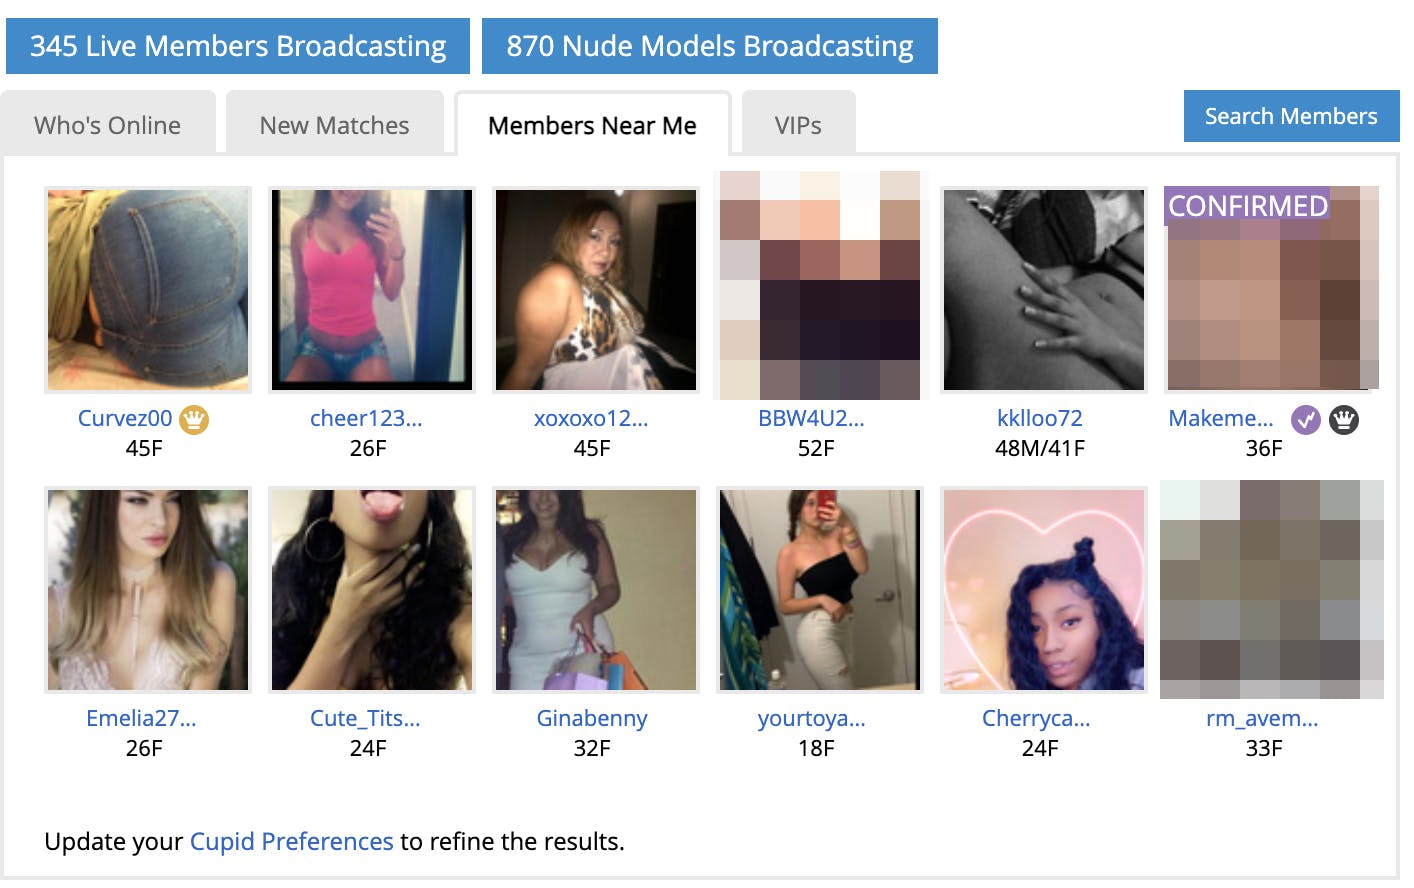 Screenshot of AdultFriendFinder's homepage featuring people online near me.